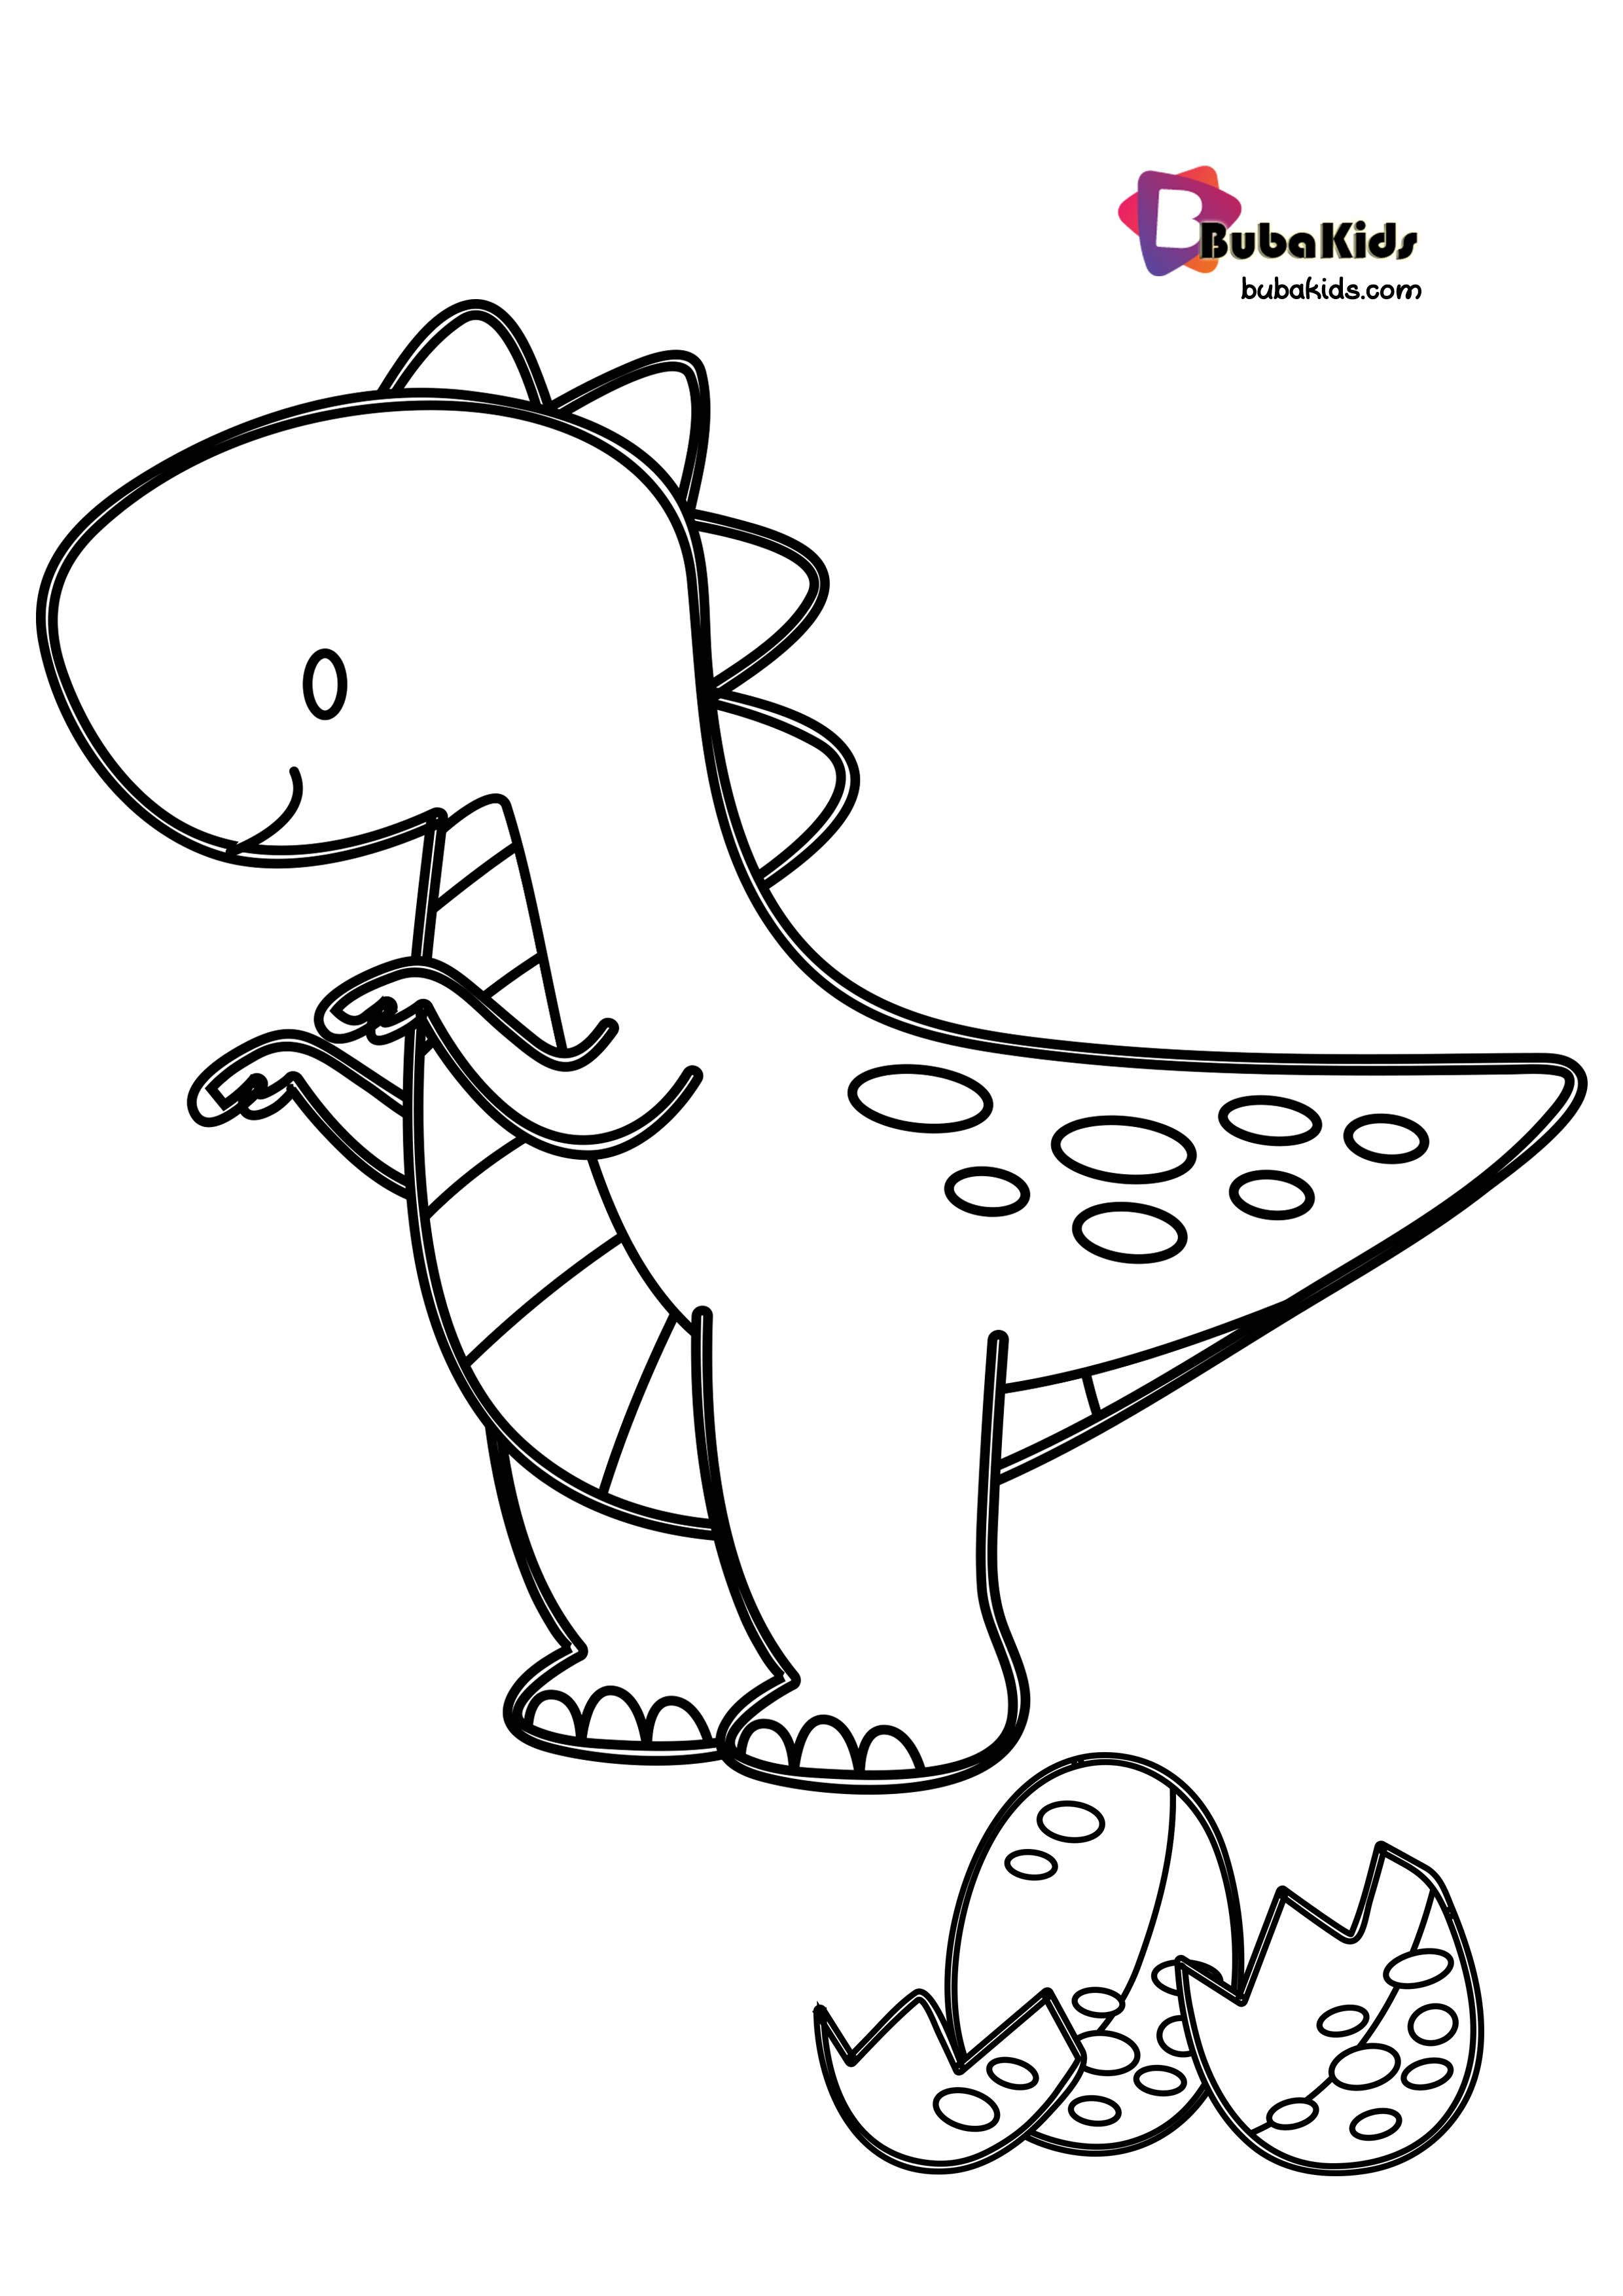 Baby Trex Coloring Page With Egg Dinosaur Coloring Pages